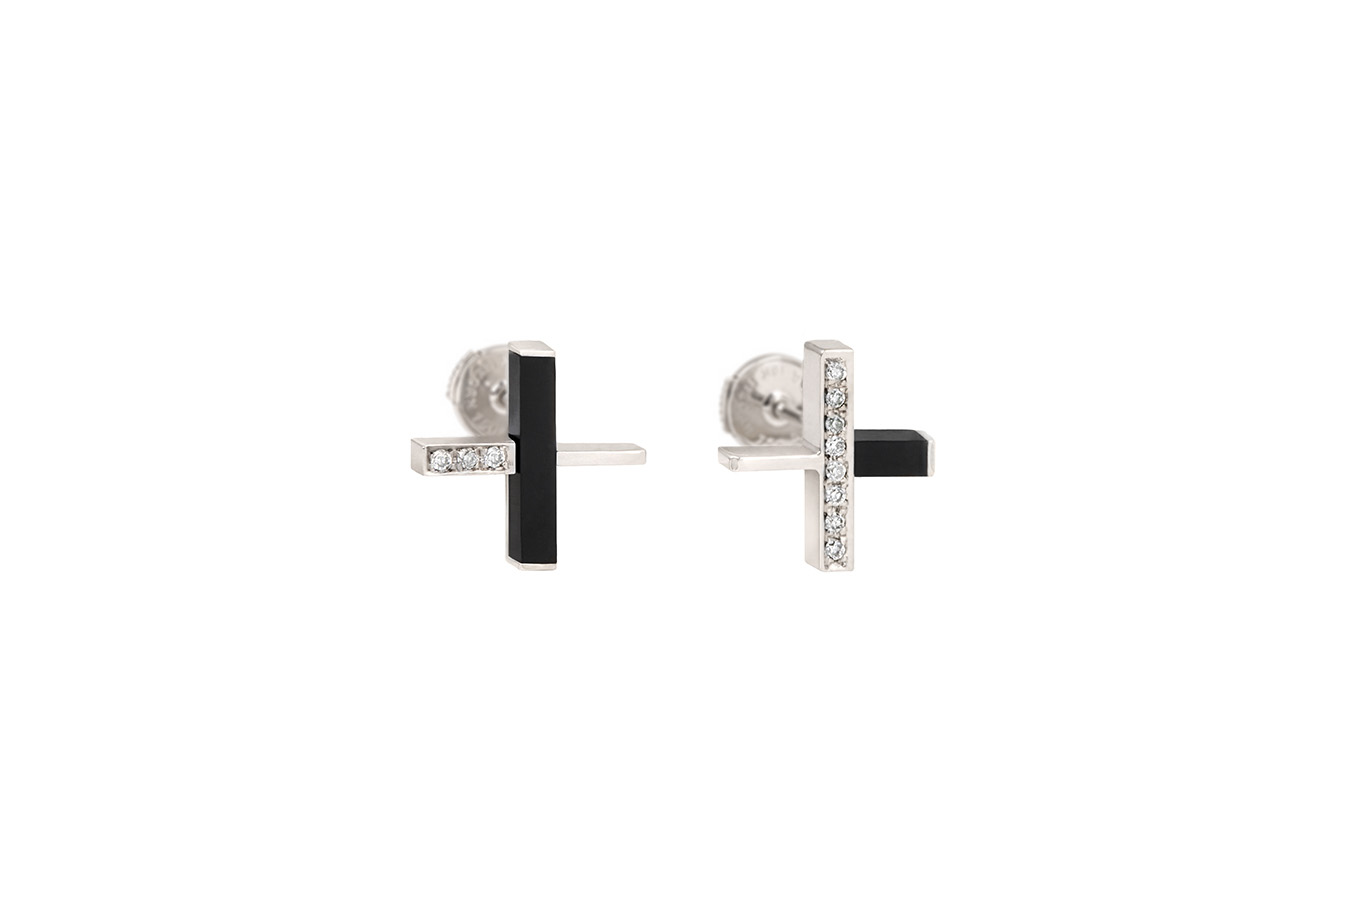 INTERSECTION Earrings White Gold 18K Onyx 11 Diamonds